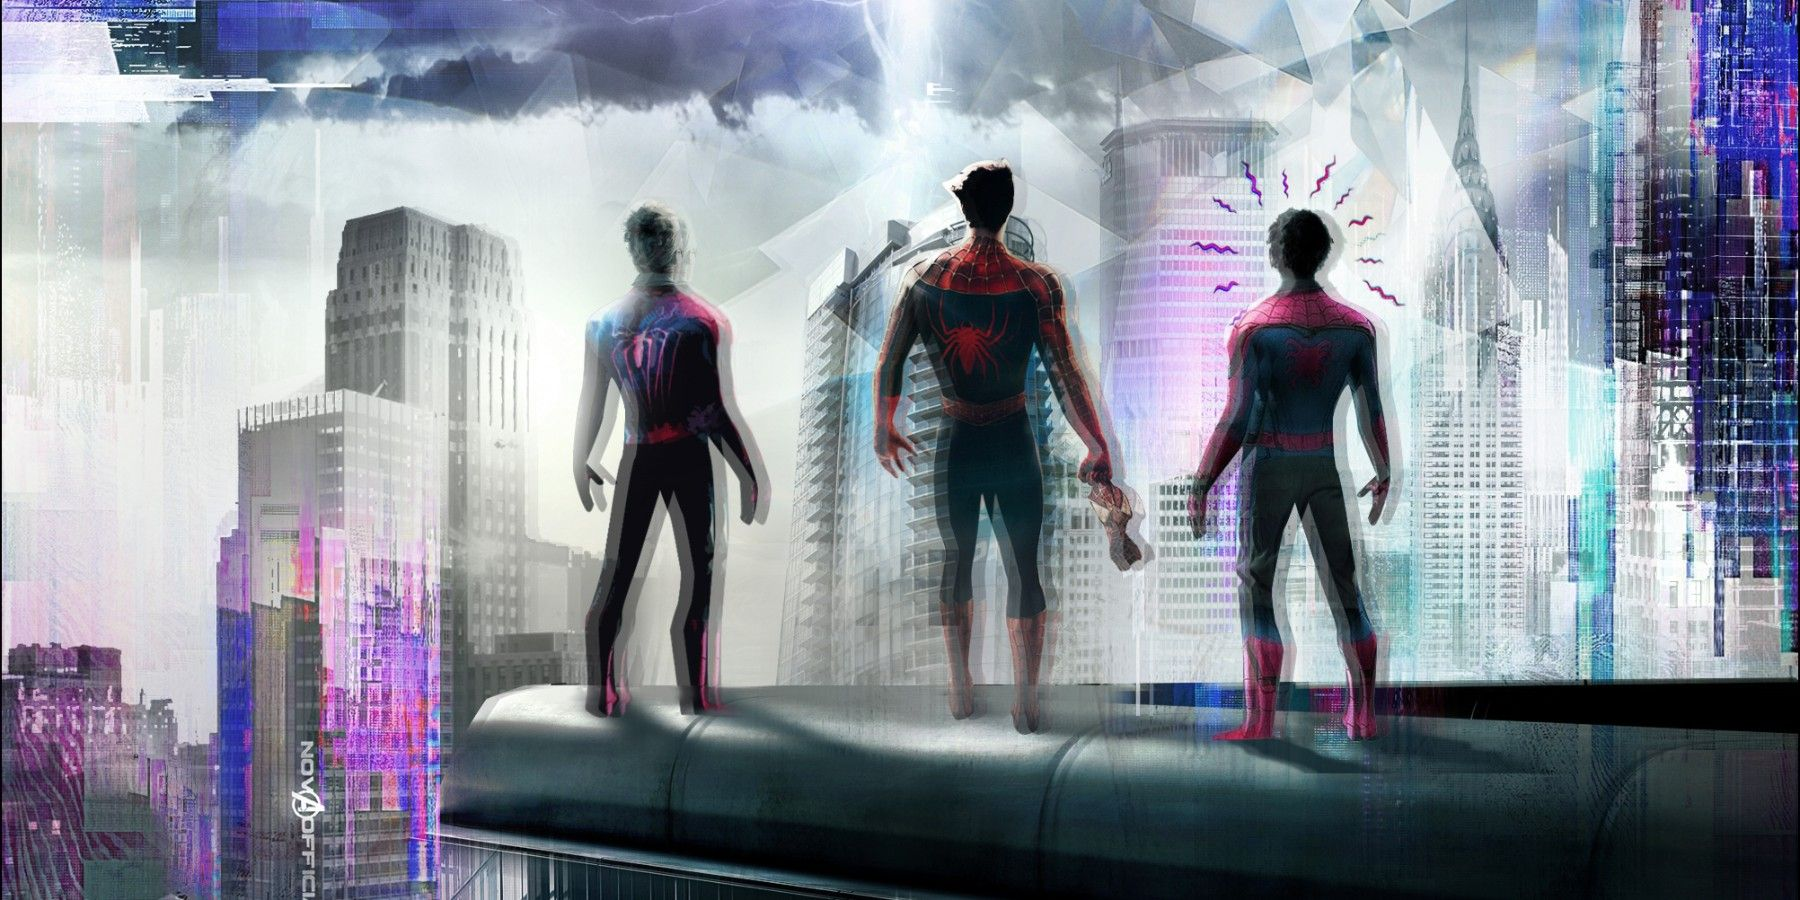 Jamie Foxx Teases Live-Action Spider-Verse With Fan Poster - Flipboard